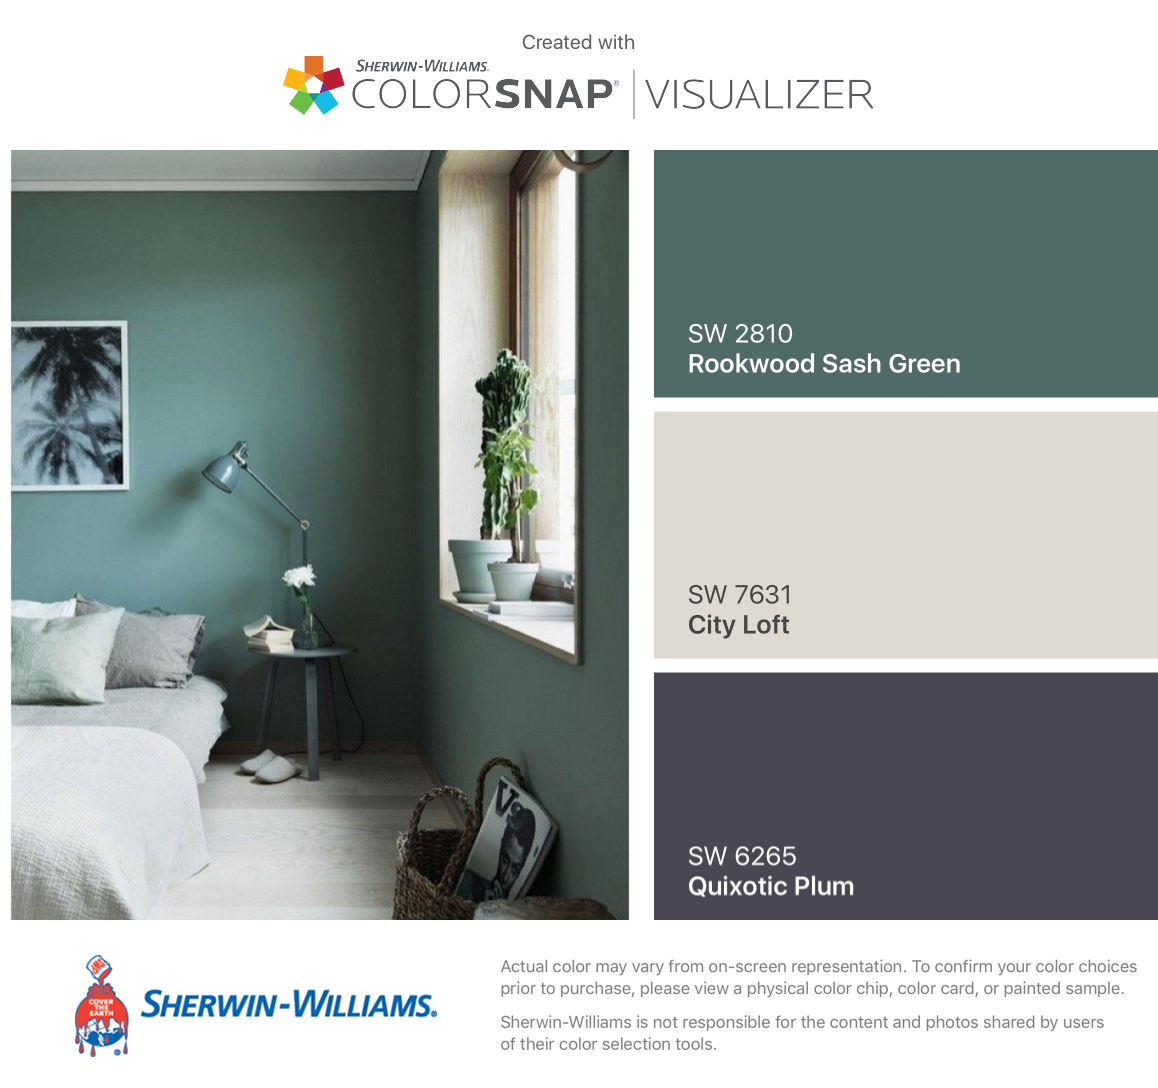 I found these colors with ColorSnap® Visualizer for iPhone by Sherwin-Williams: Rookwood Sash Green (SW 2810), City Loft (SW 7631), Quixotic Plum (SW 6265). #cityloftsherwinwilliams